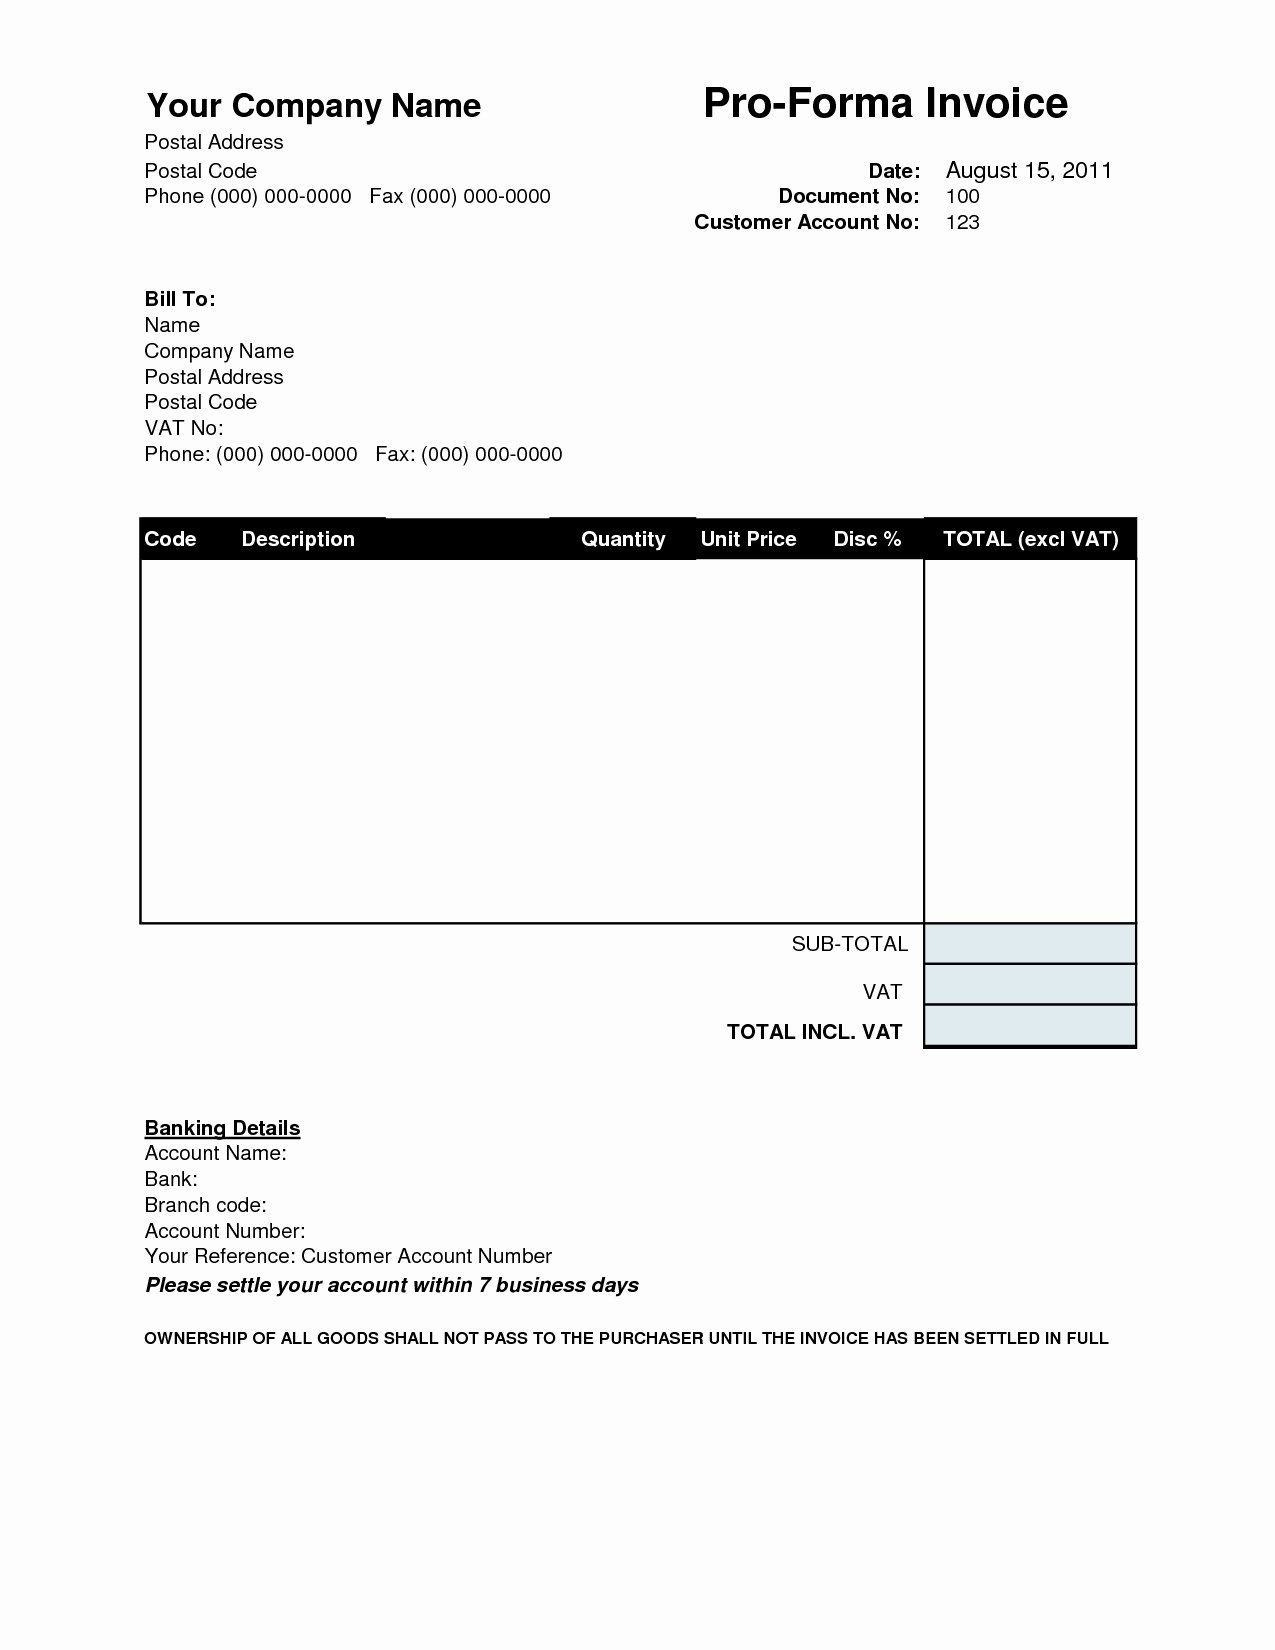 Free Downloadable Invoice Template Unique Proforma Invoice Template Download Free Invoice Template